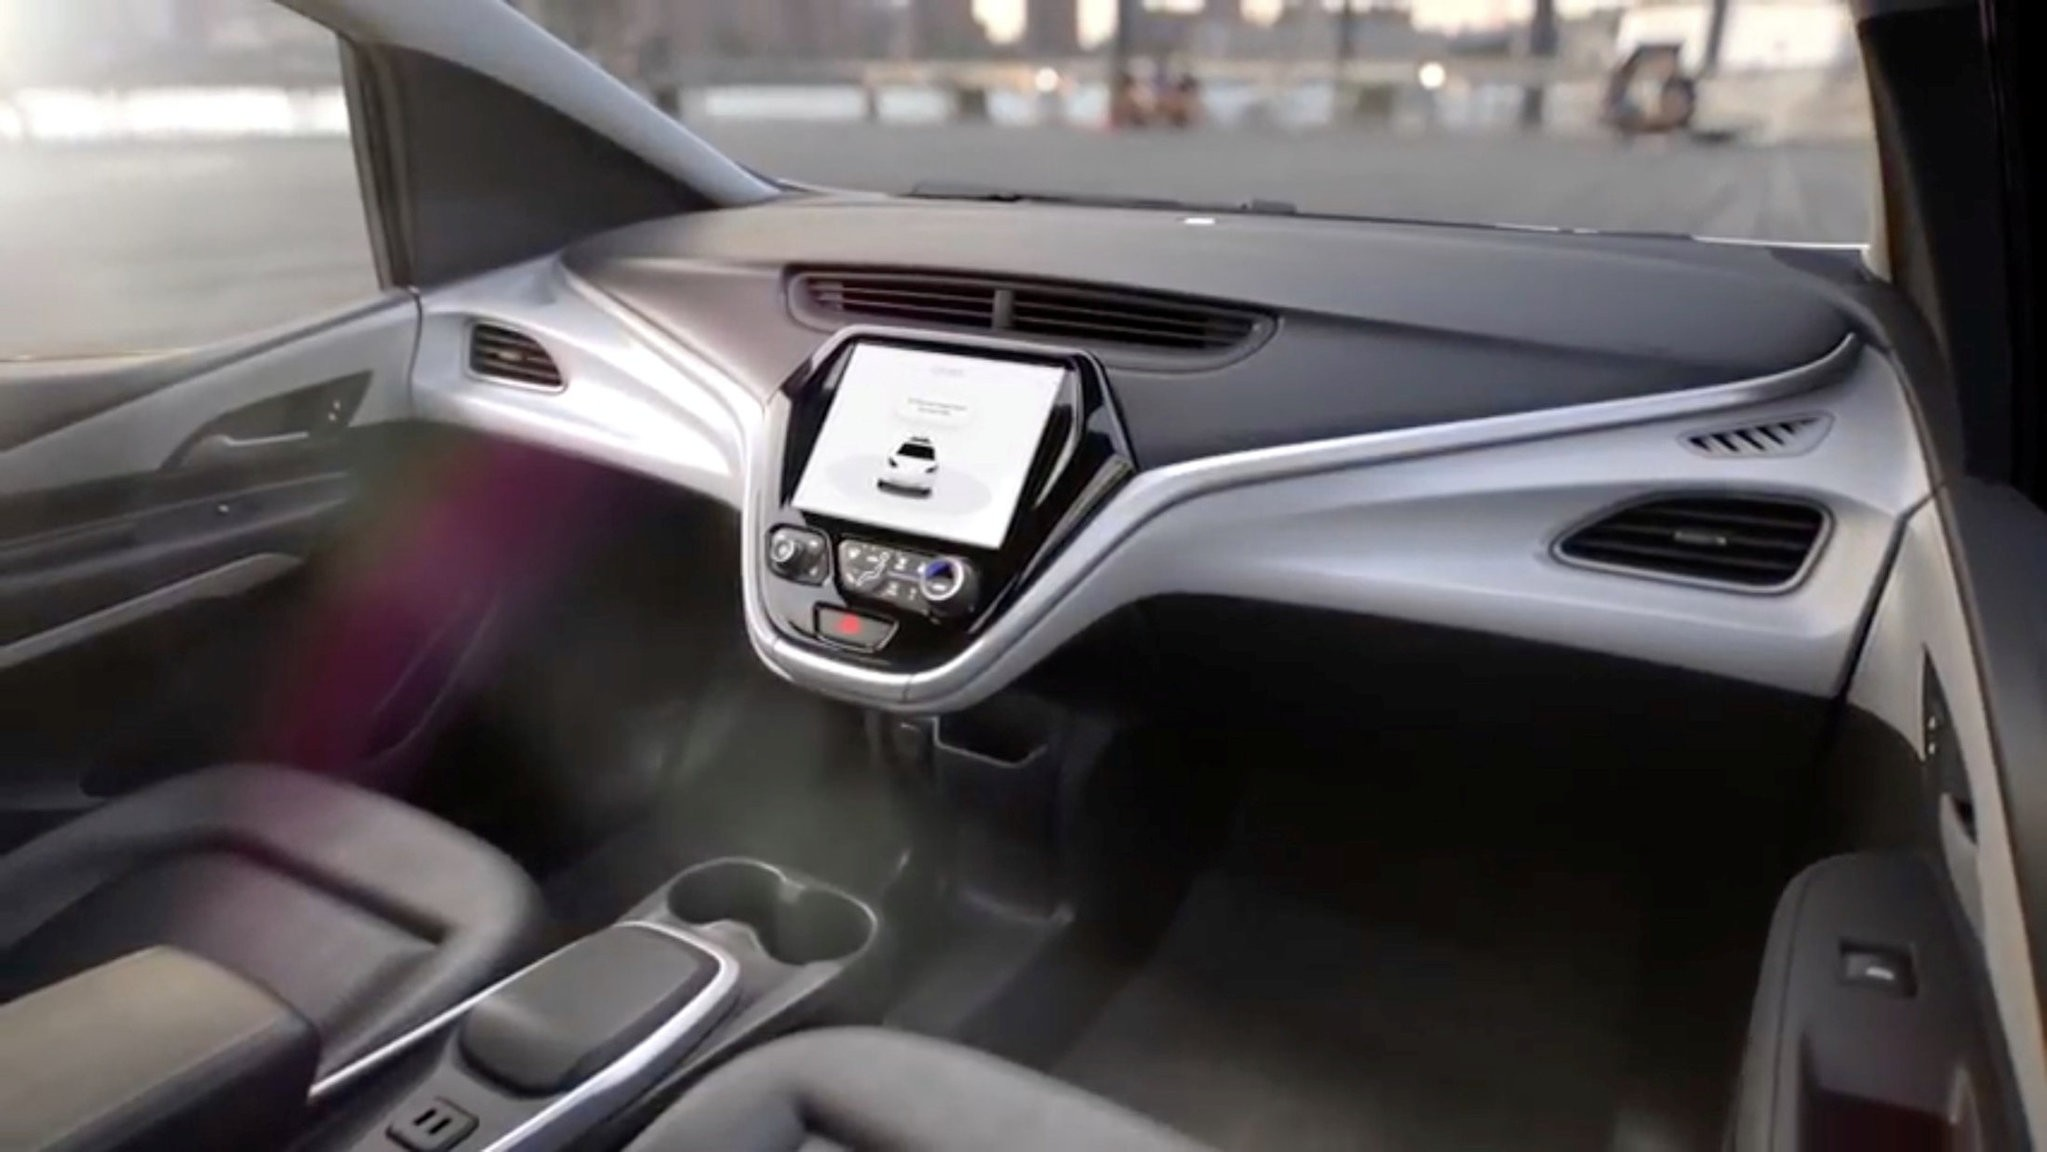 GMu2019s planned Cruise AV driverless car features no steering wheel or pedals in a still image.